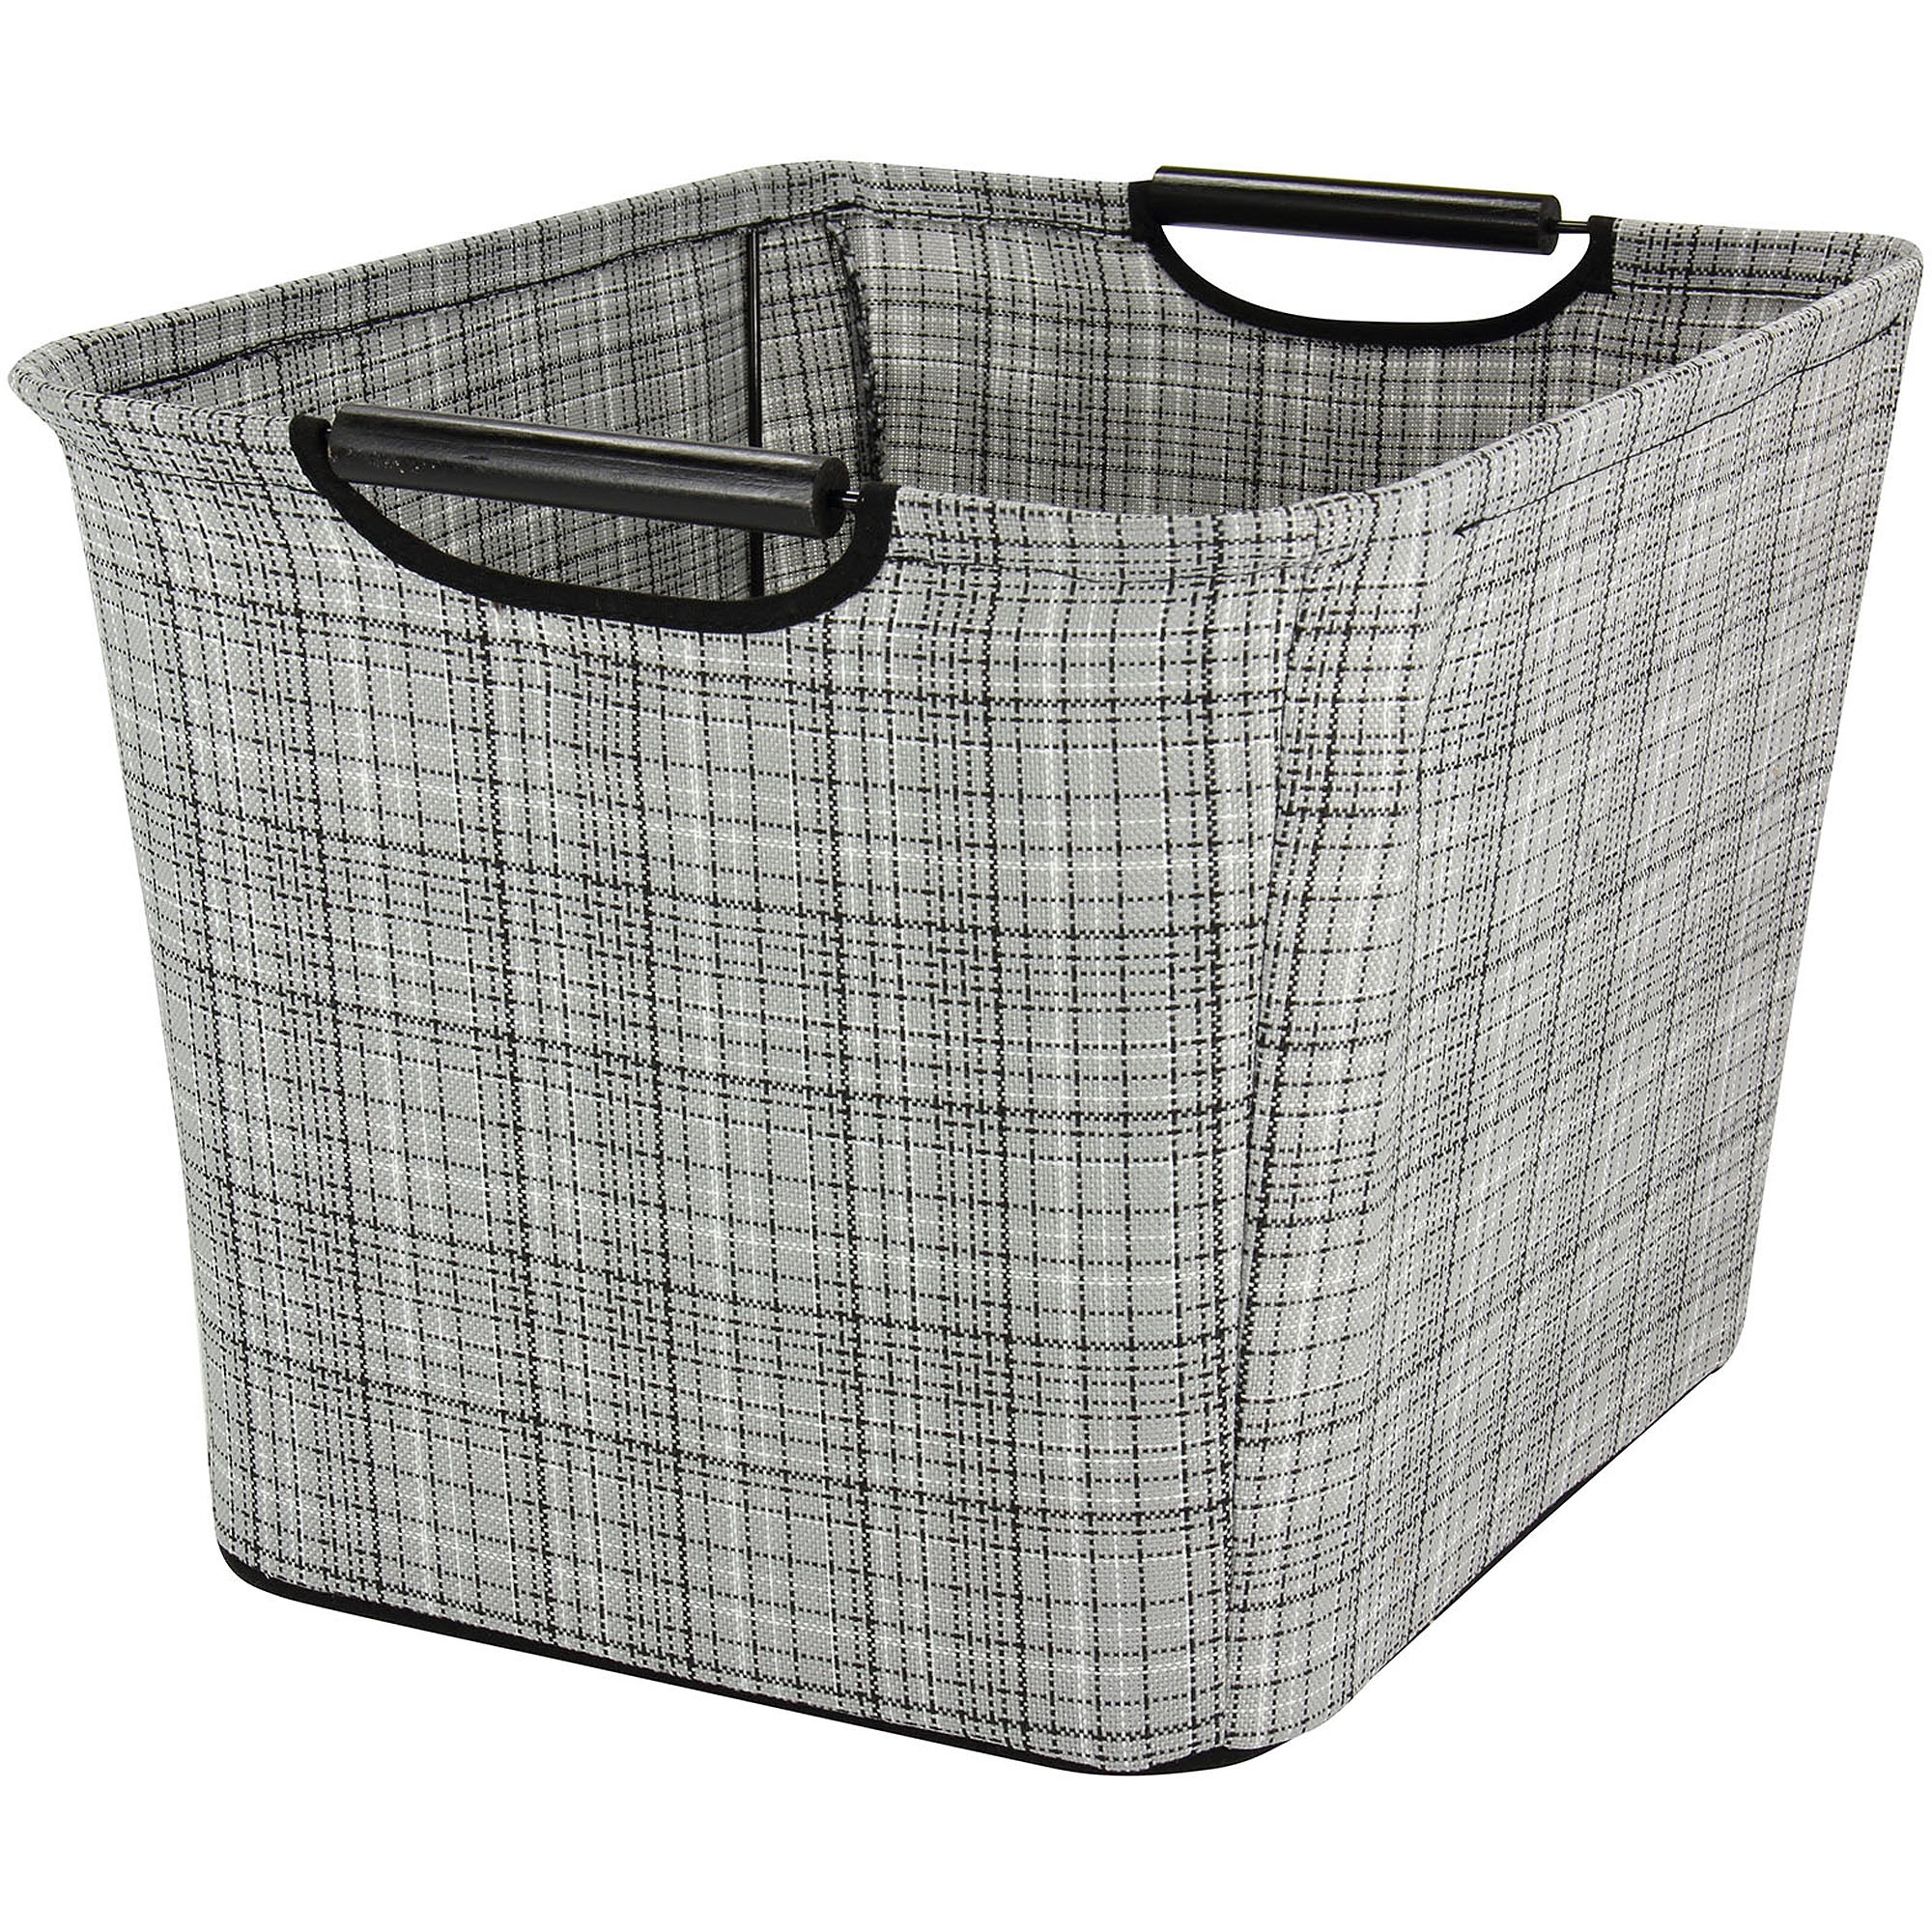 Household Essentials Medium Tapered Storage Bin with Wood Handles, Grey Plaid